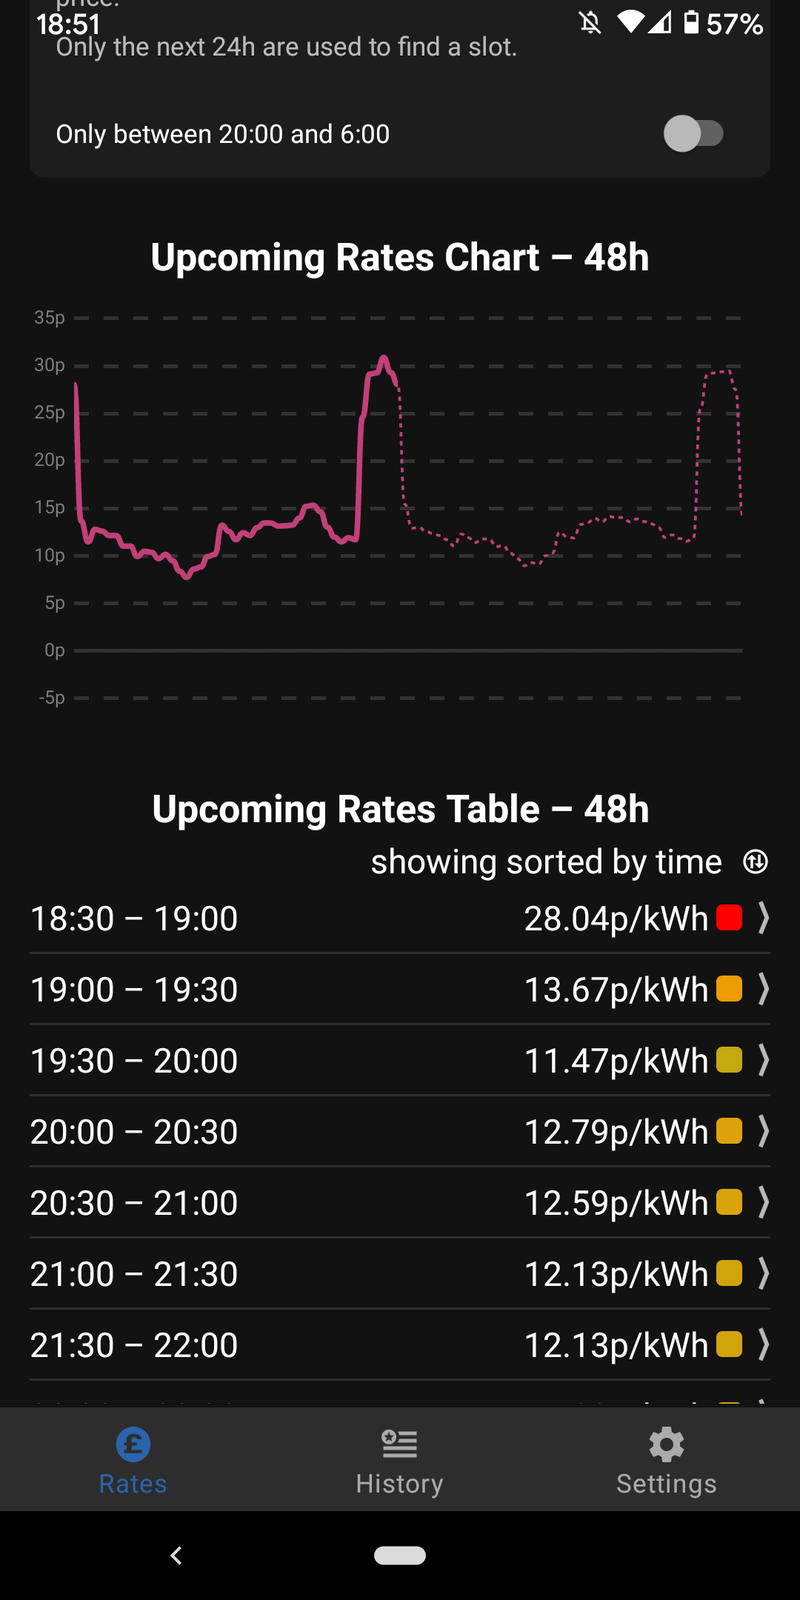 A screenshot of Colin's app showing rates: 6.30pm peak price is 28p, half an hour later it's half that at 13p